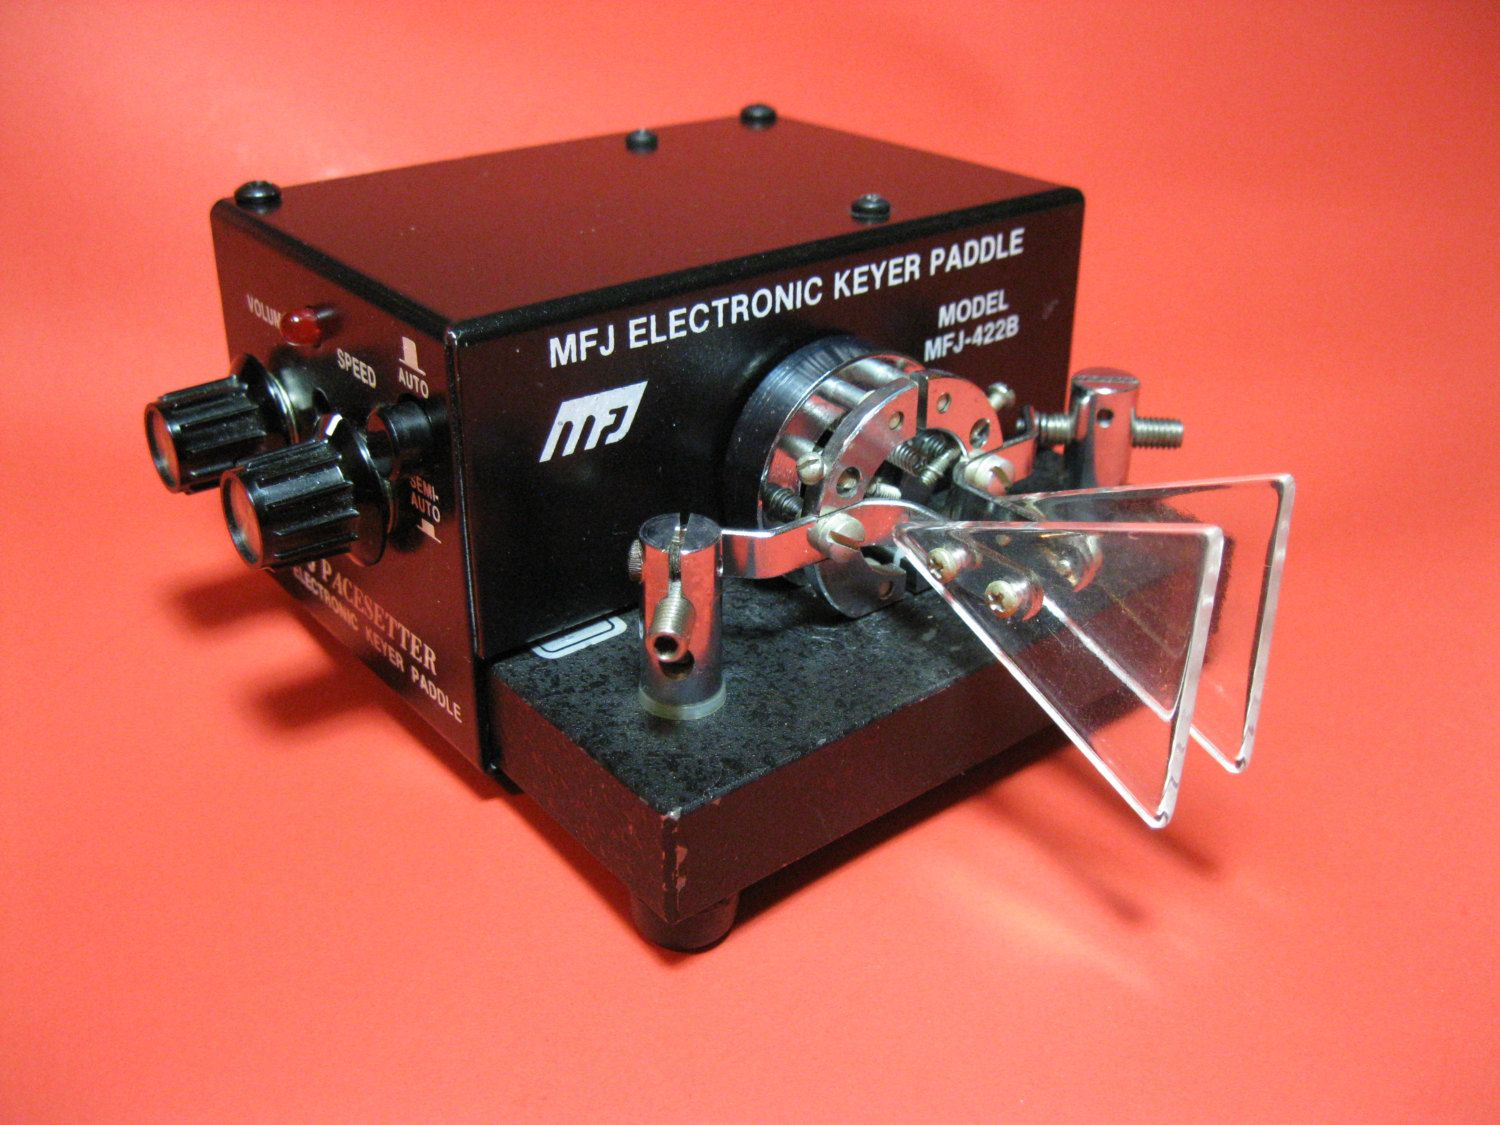 MFJ Electronic Keyer with Bencher BY-1 Iambic Paddle